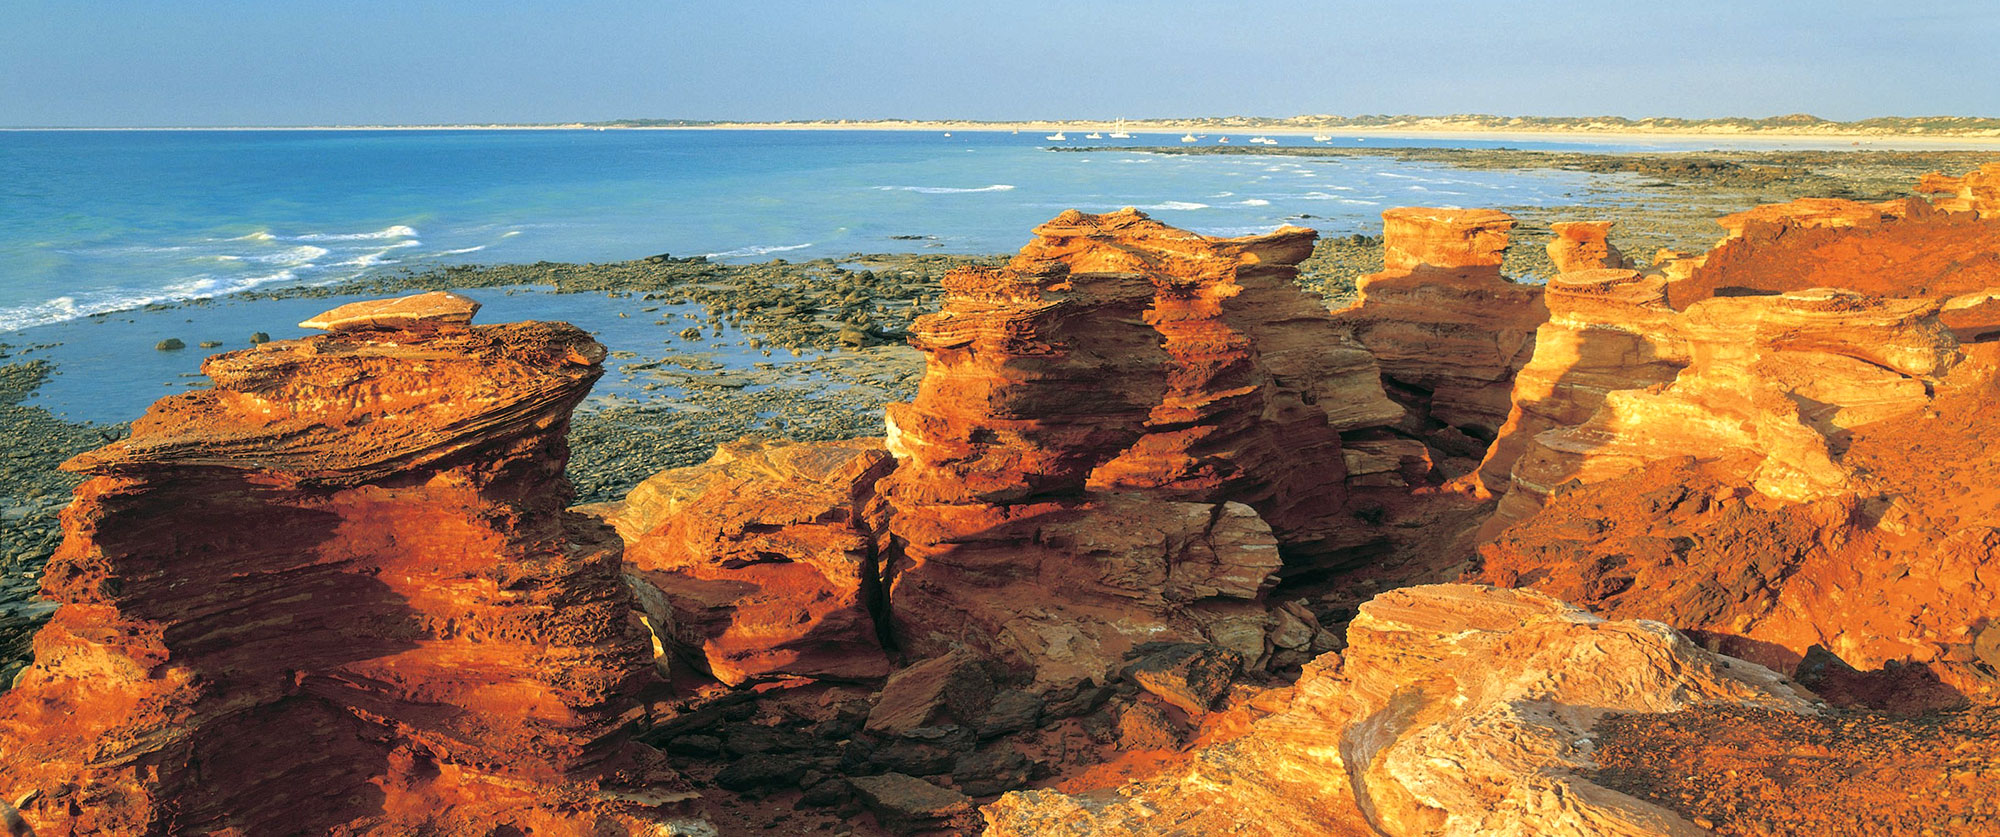 Australia Vacation Package: The Road Less Traveled